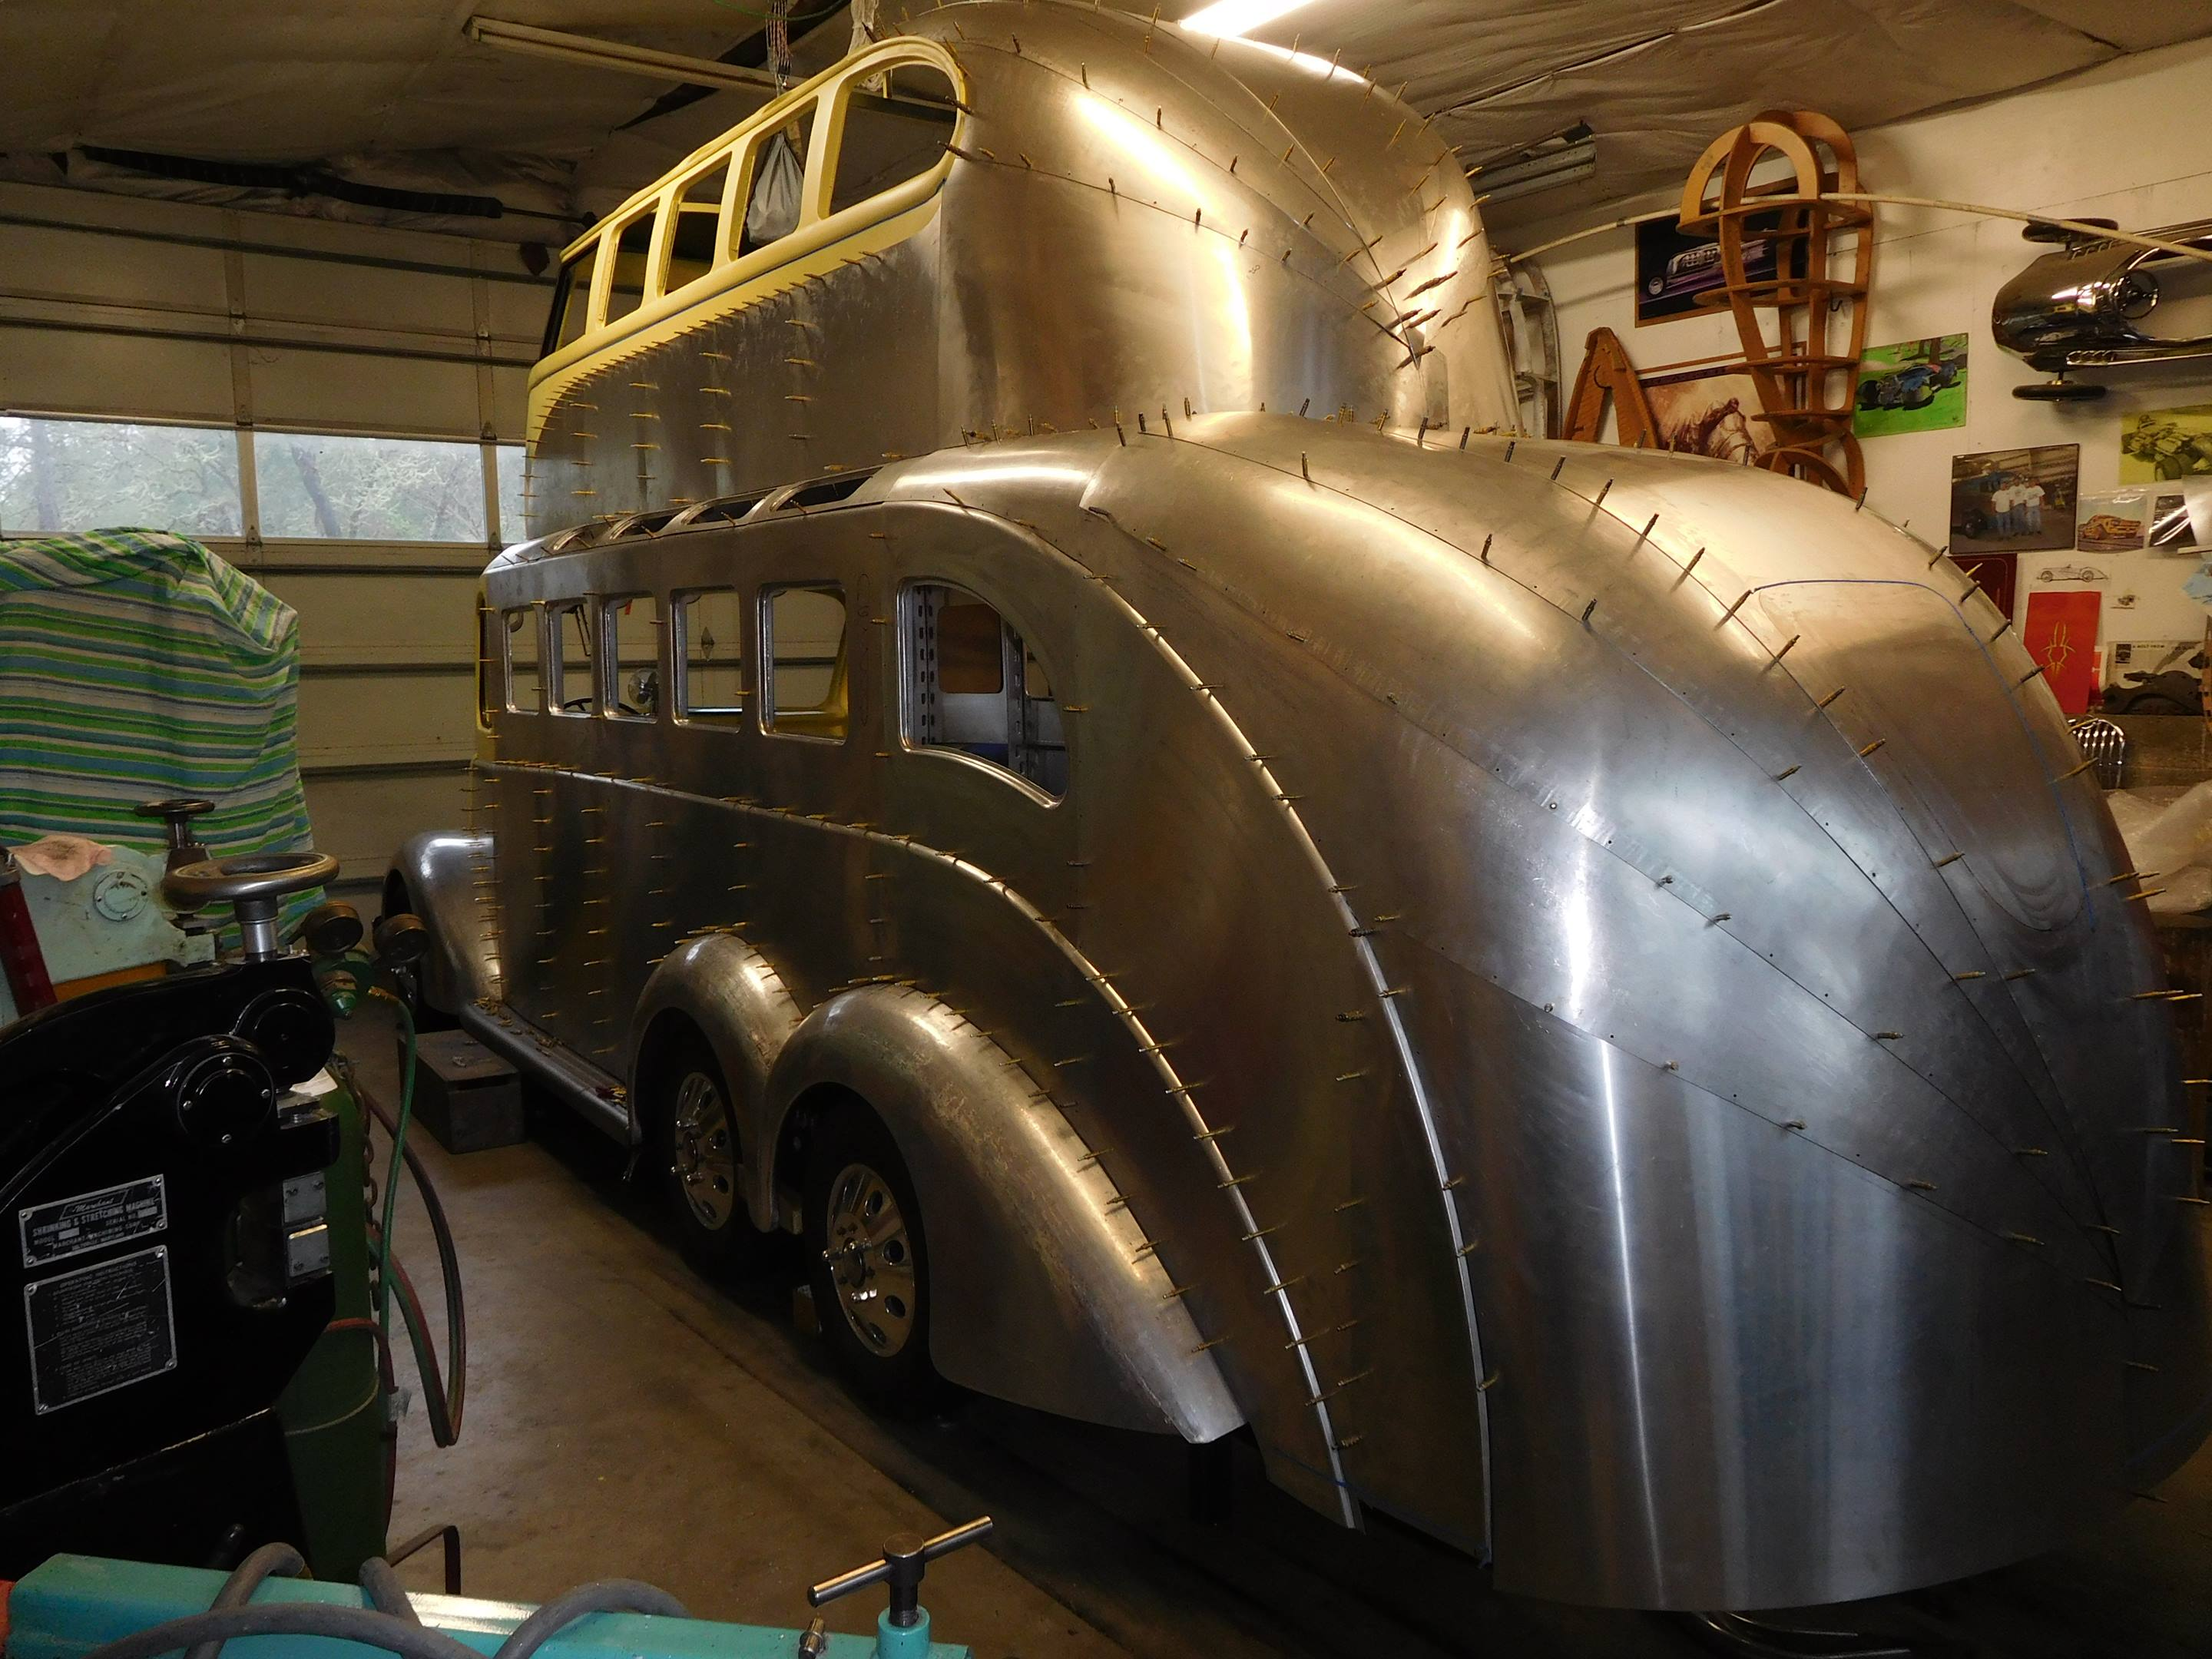 Randy Grubb began this project just over a year ago, and the latest photos show the tremendous progress that has been made. The VW Bus incorporated into the roof began as an 11-window model, but it has since been converted into a more Samba-like configuration with an upper row of windows. The new aluminum skin on the side and tapered tail show the lapped construction method.